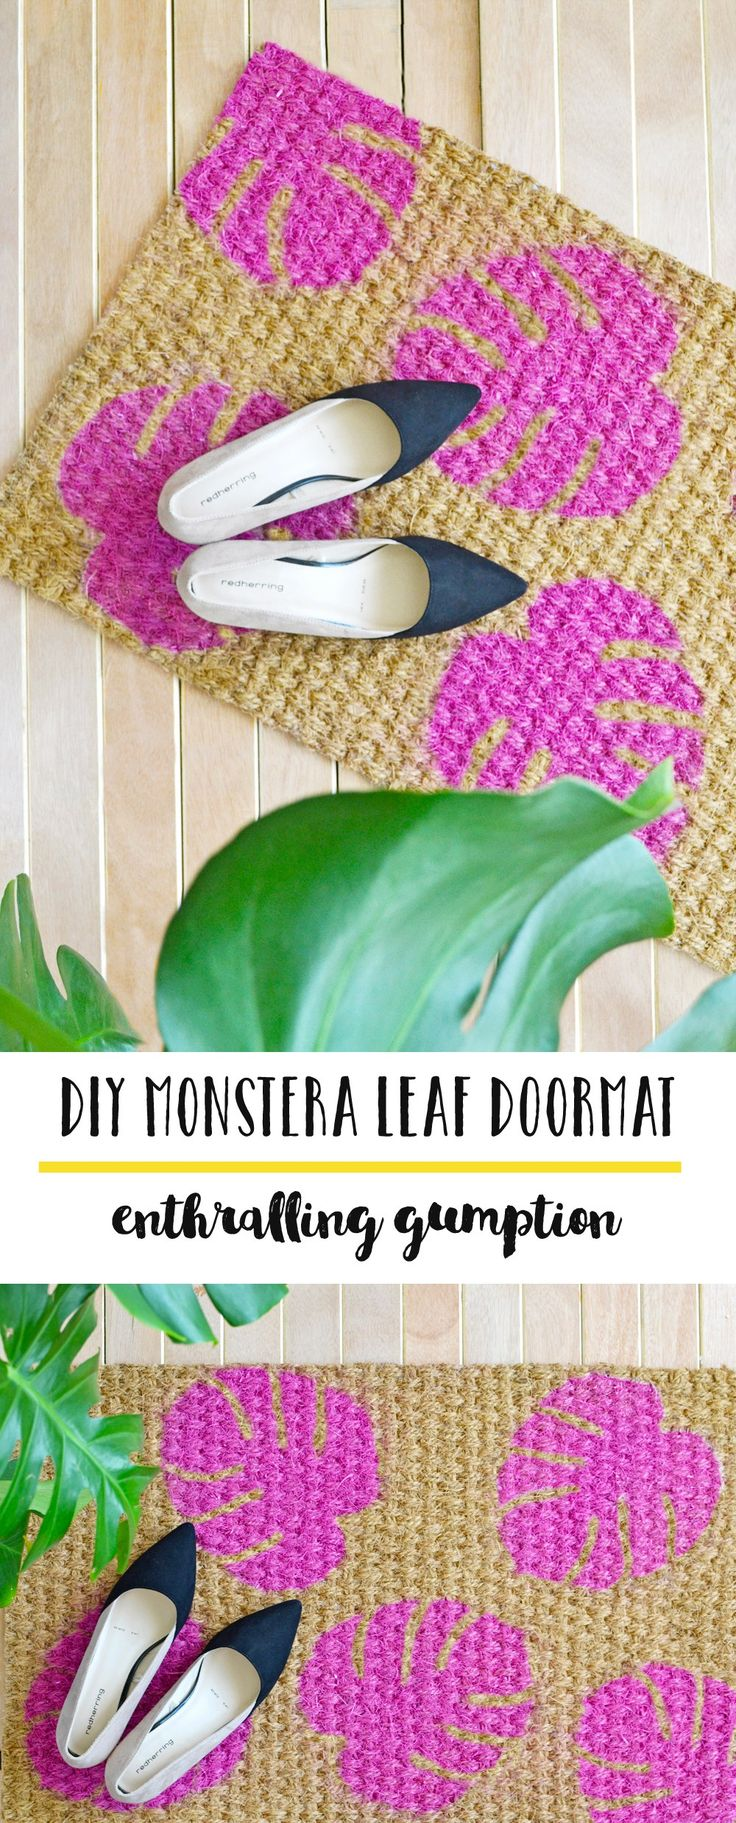 Tropical plants and cactus' are the rage these days and the trend doesn't look to be fading away soon especially when more and more stores seem to be offering a variety of home & decor products either in their shape or pattern. I thought of giving a tribute to my Monstera plant by making this hot pink monstera leaf doormat